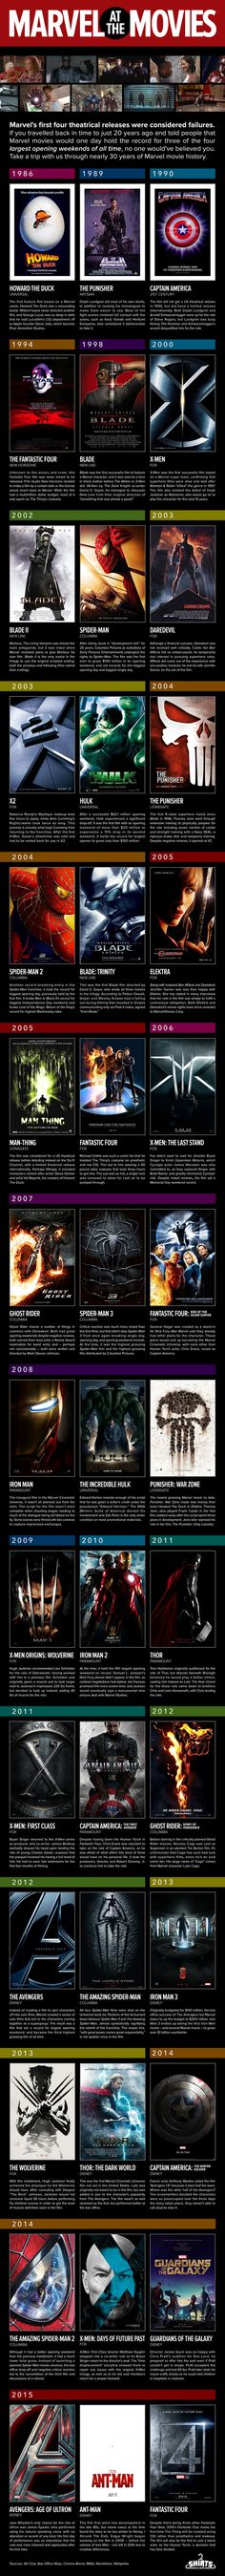 This Marvel movie history infographic comes from Shirts.com. There's a bit  of interesting information that comes along with each movie listed. I did  my own Marvel movie history breakdown earlier this year, with lots of other  details. If you want to check them out.Marvel's Early Movie History - 1944  to 1990,Marvel's Early Movie History - 1994 to 2003andMarvel Movie  History - 2004 to 2008.